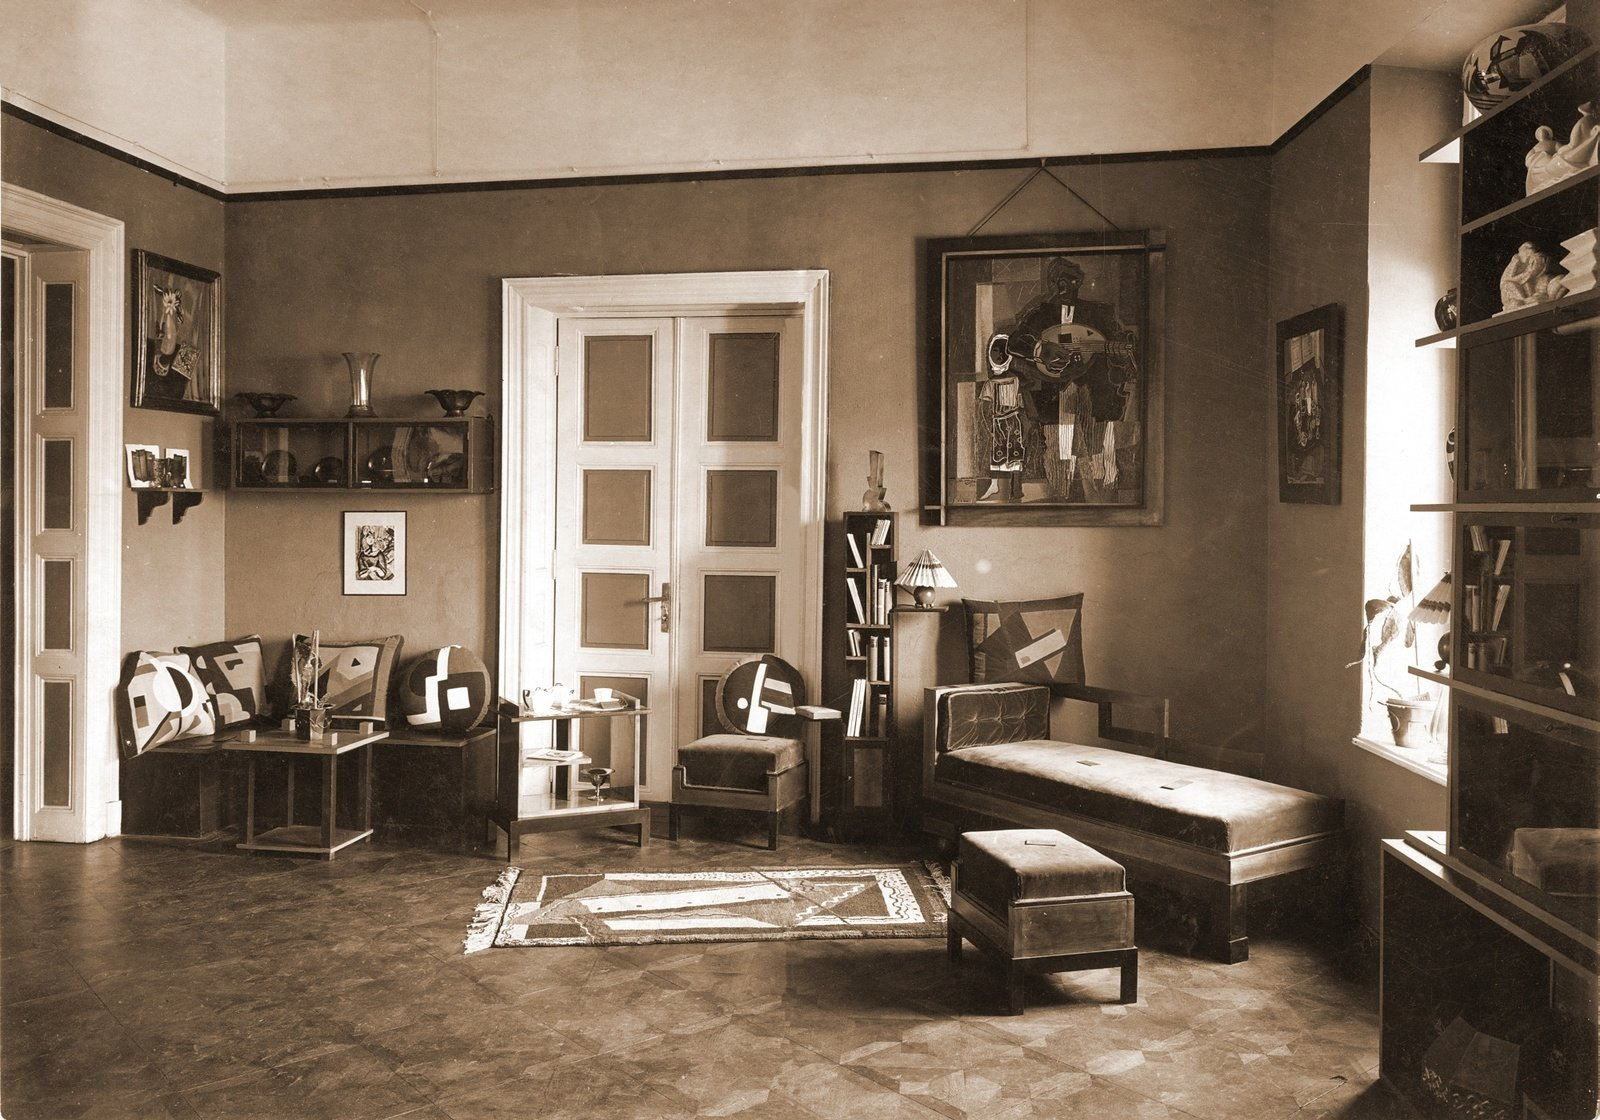 Studio of Decorative Arts, Campineanu Street, Bucharest, 1928, Unknown photographer, , Copyright Not Evaluated